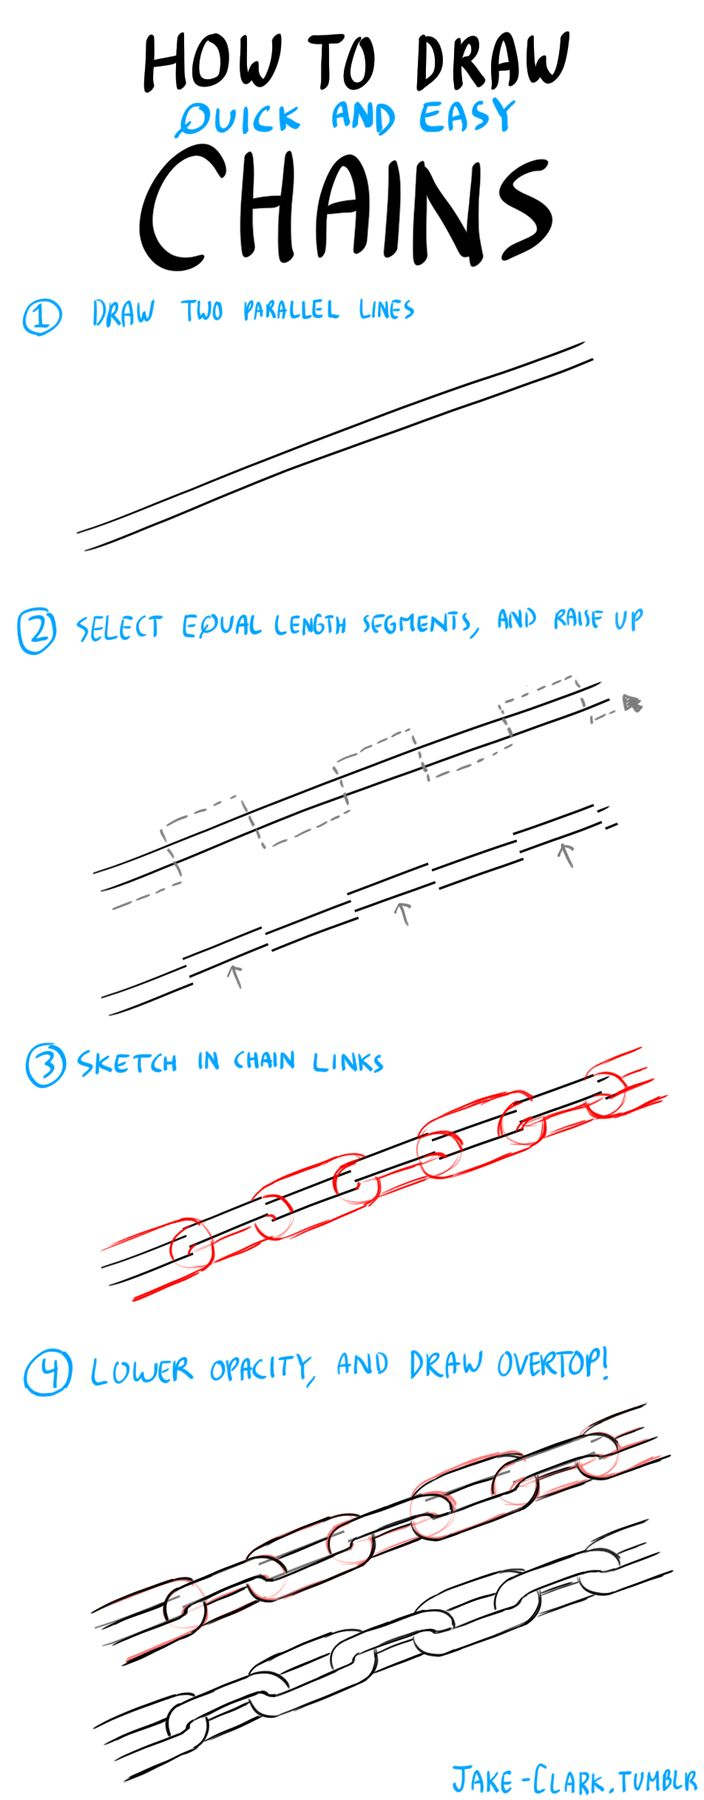 How to draw chains